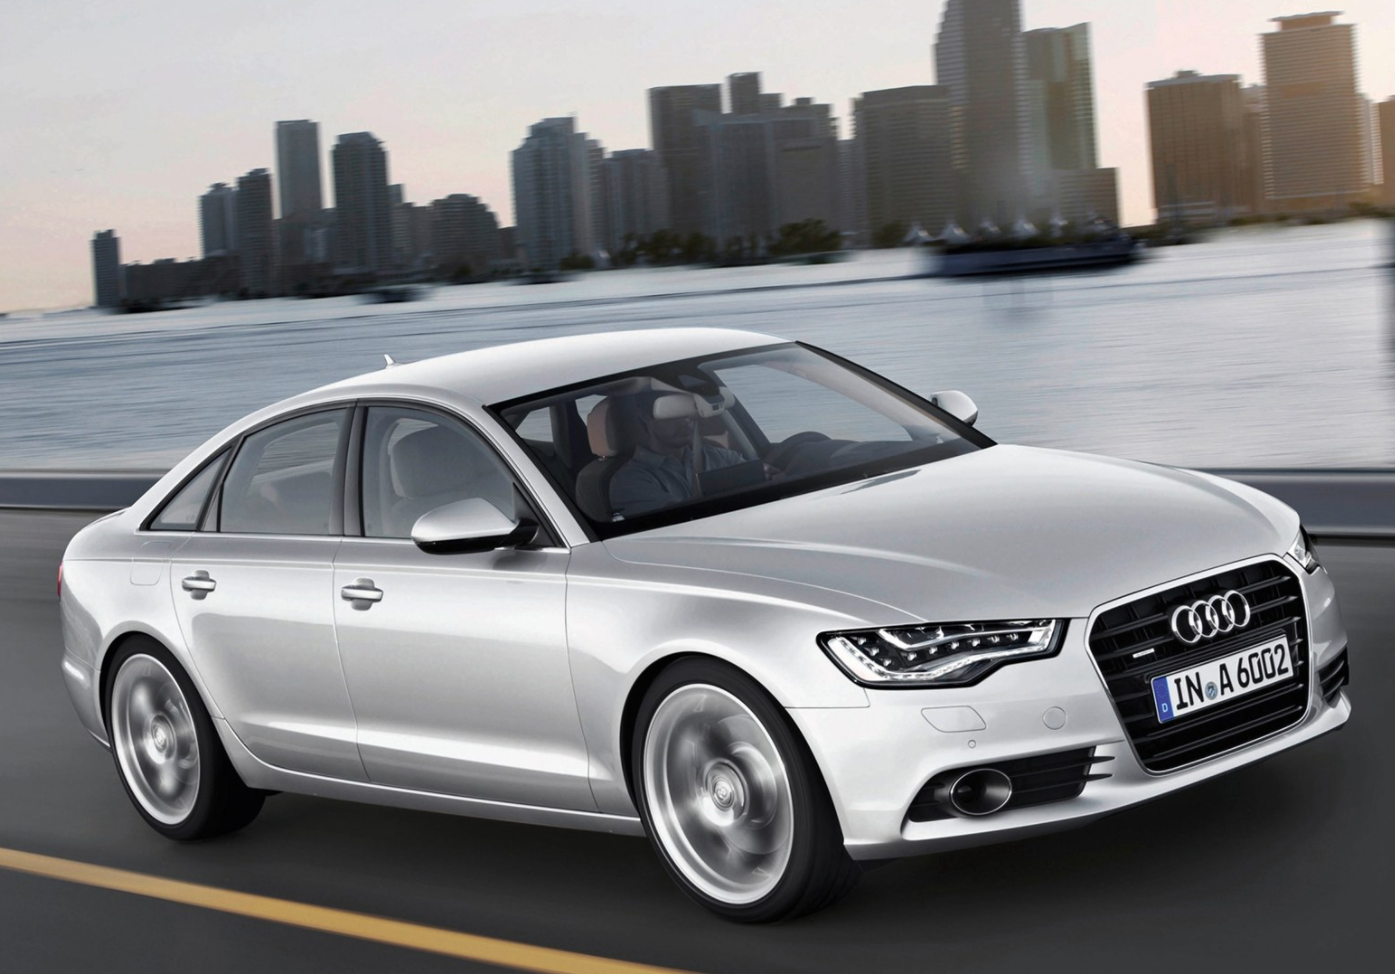 2011 Audi A6 Owners Manual